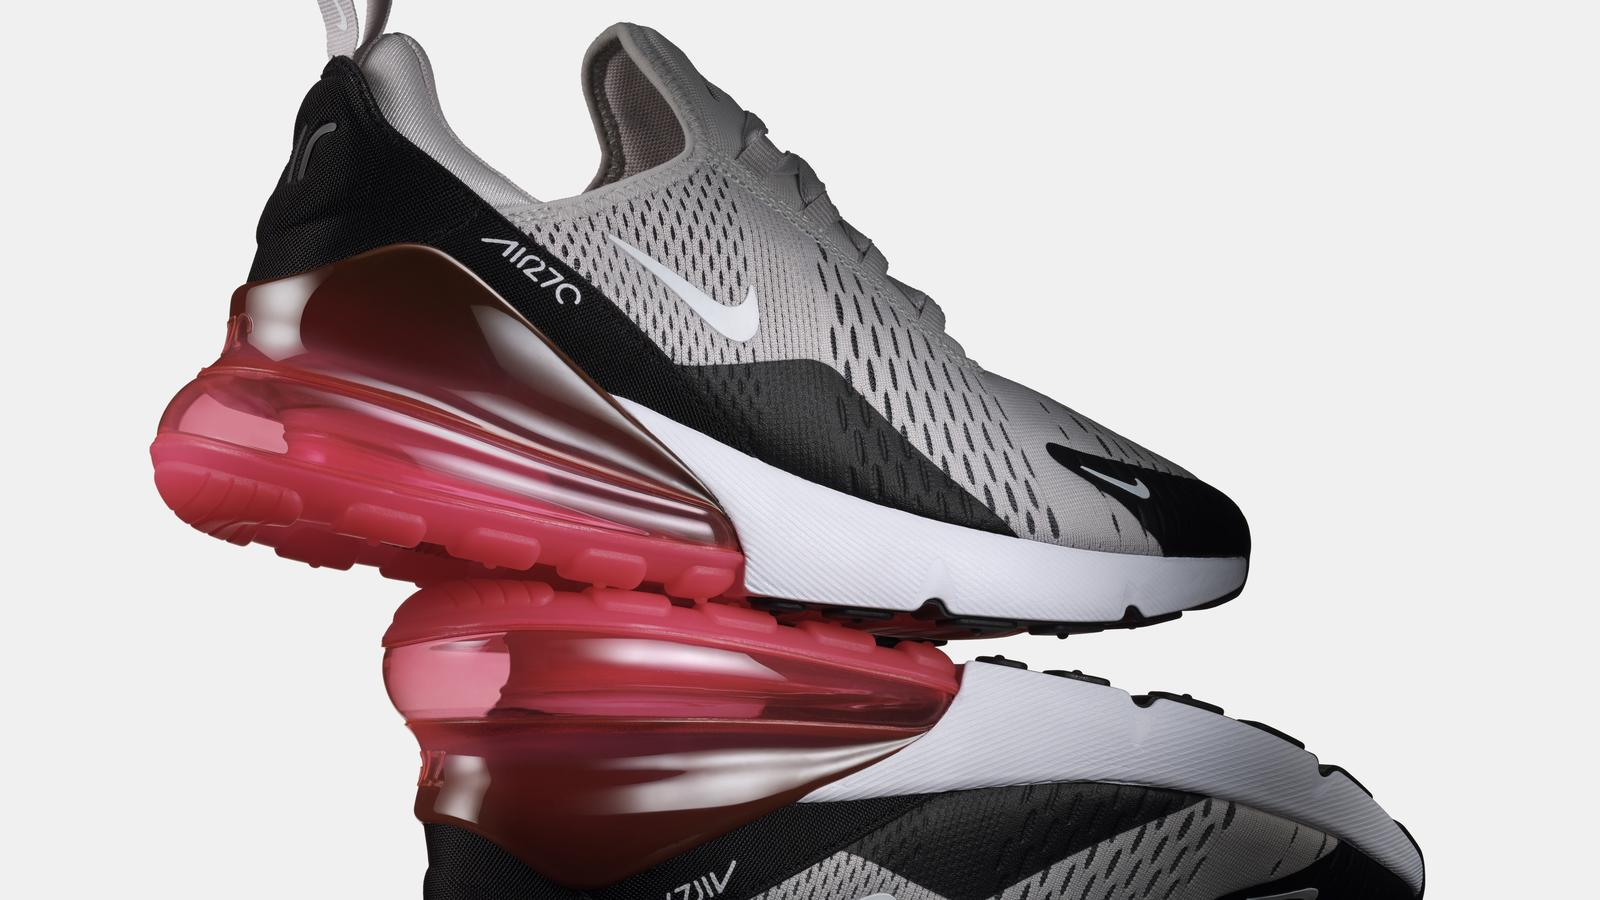 e654ed31b973 Eight Facts About the All-New Air Max 270 - Nike News